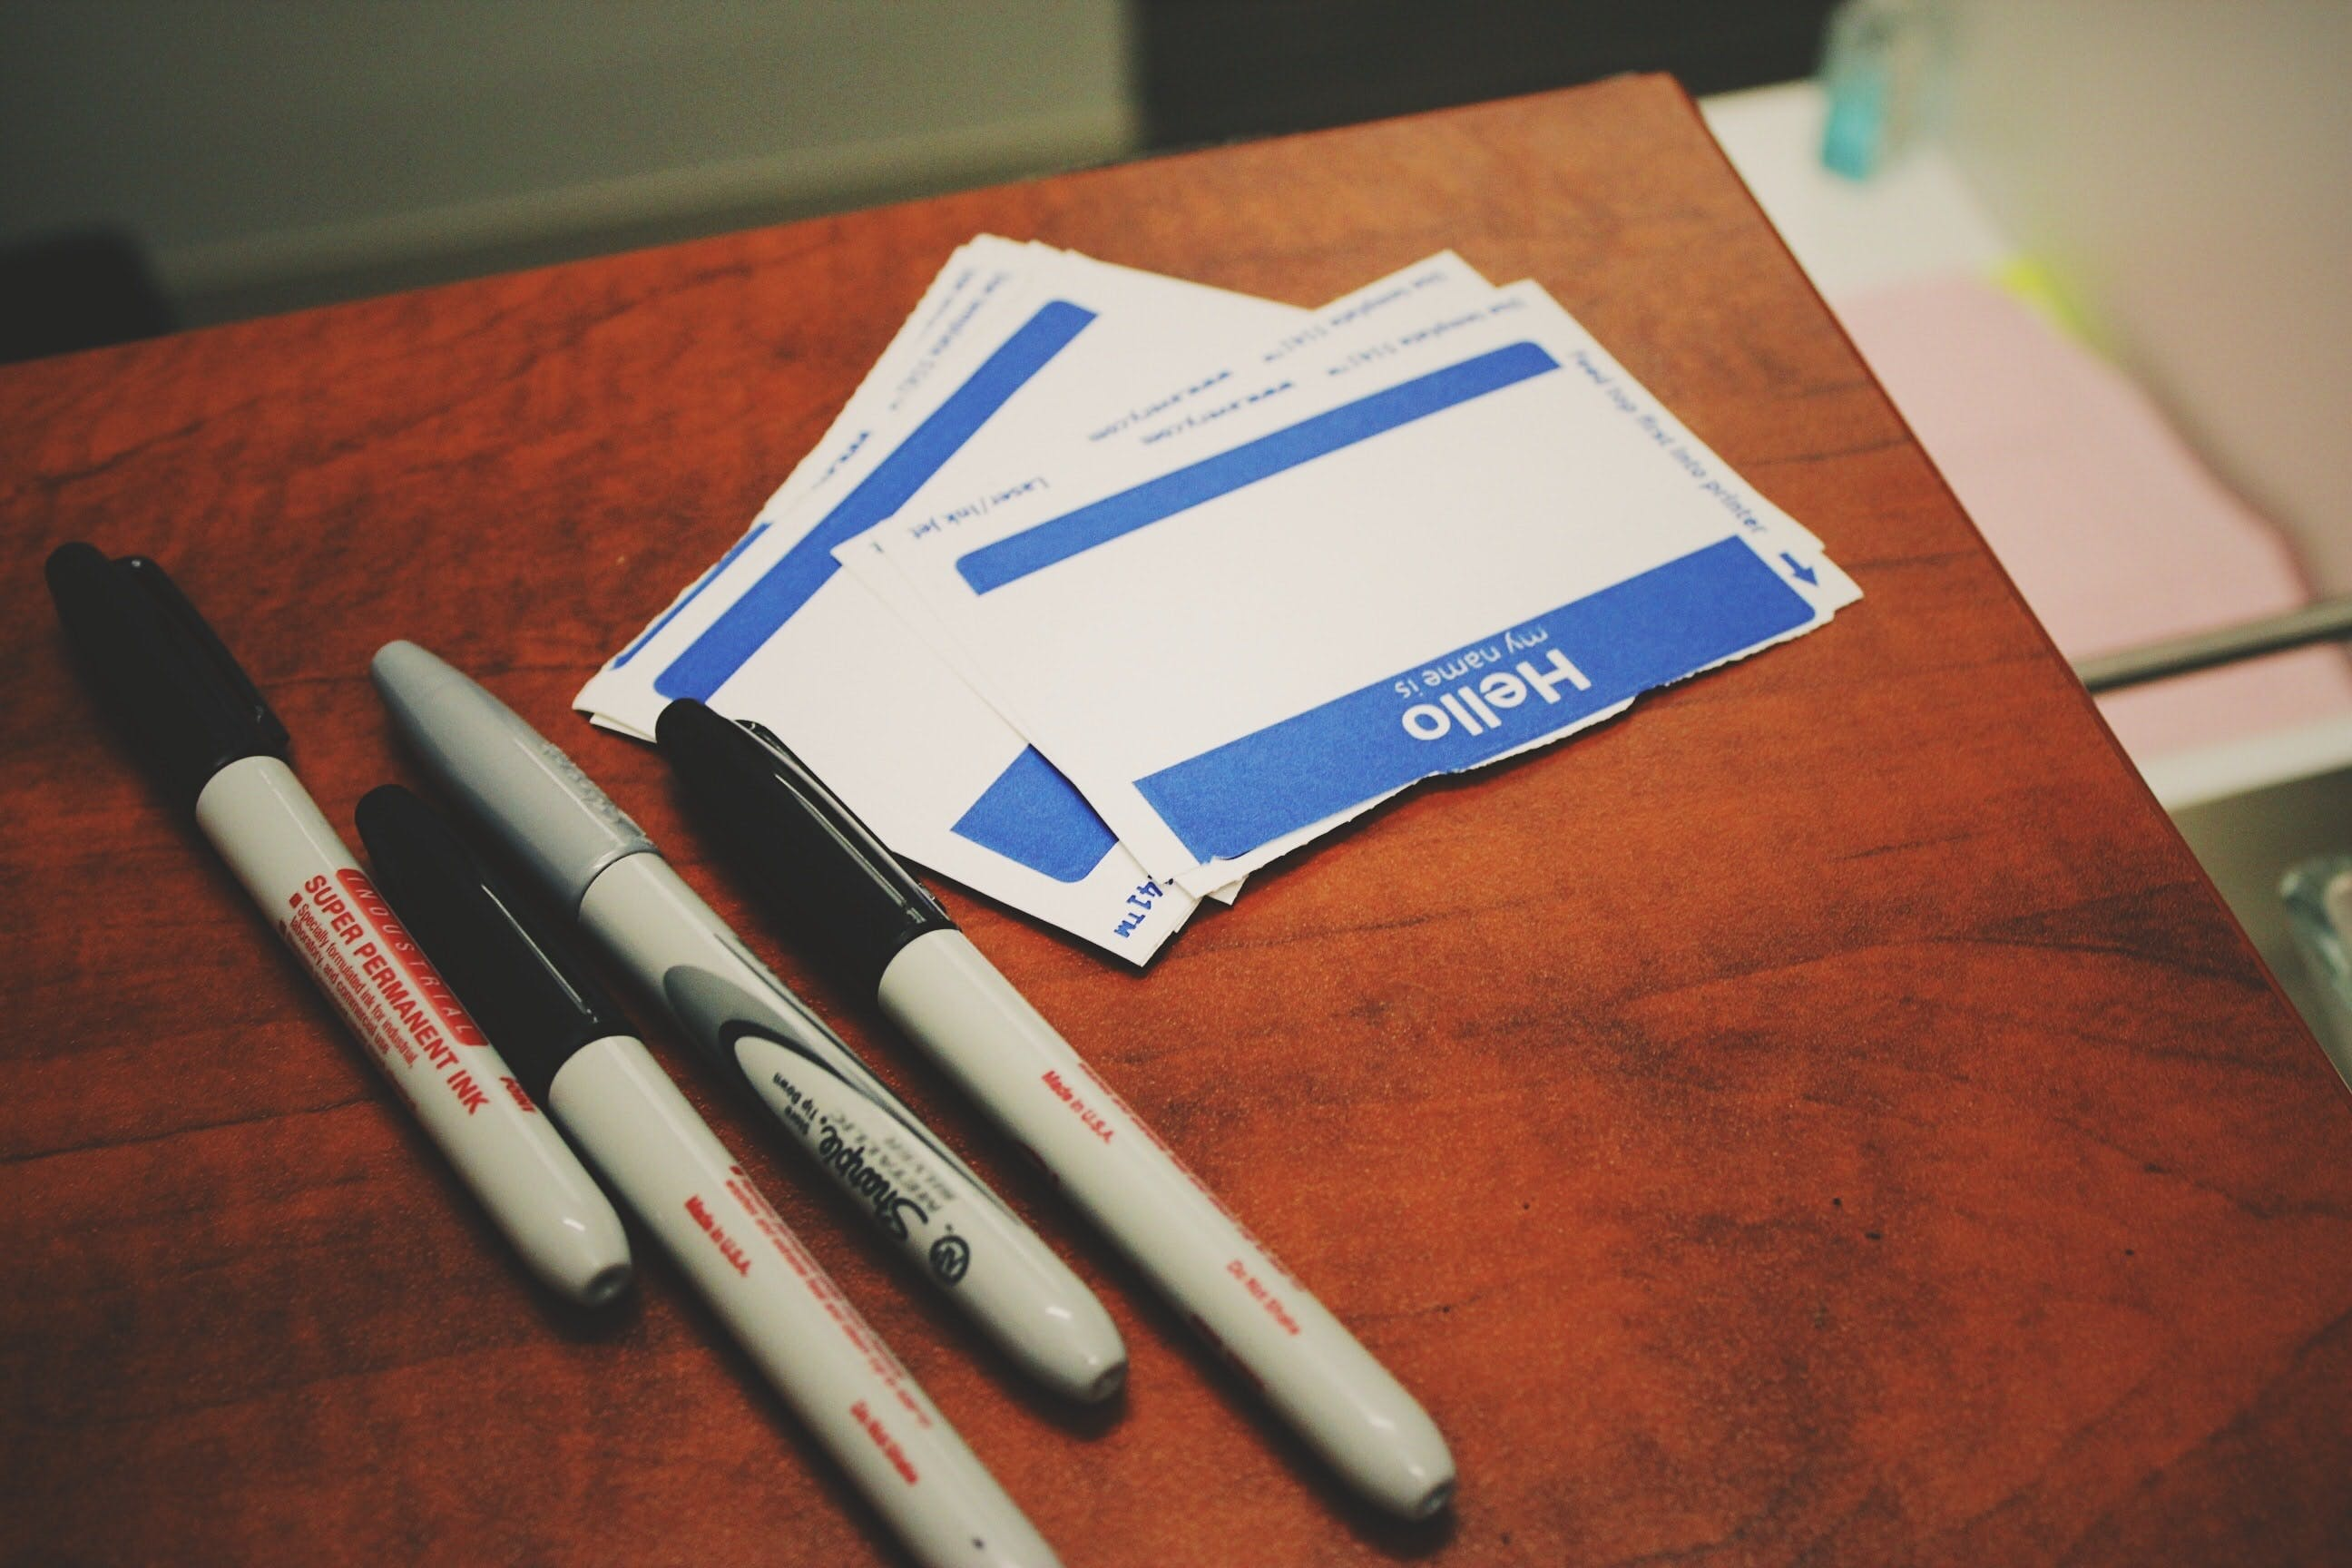 sharpies and blank name tags